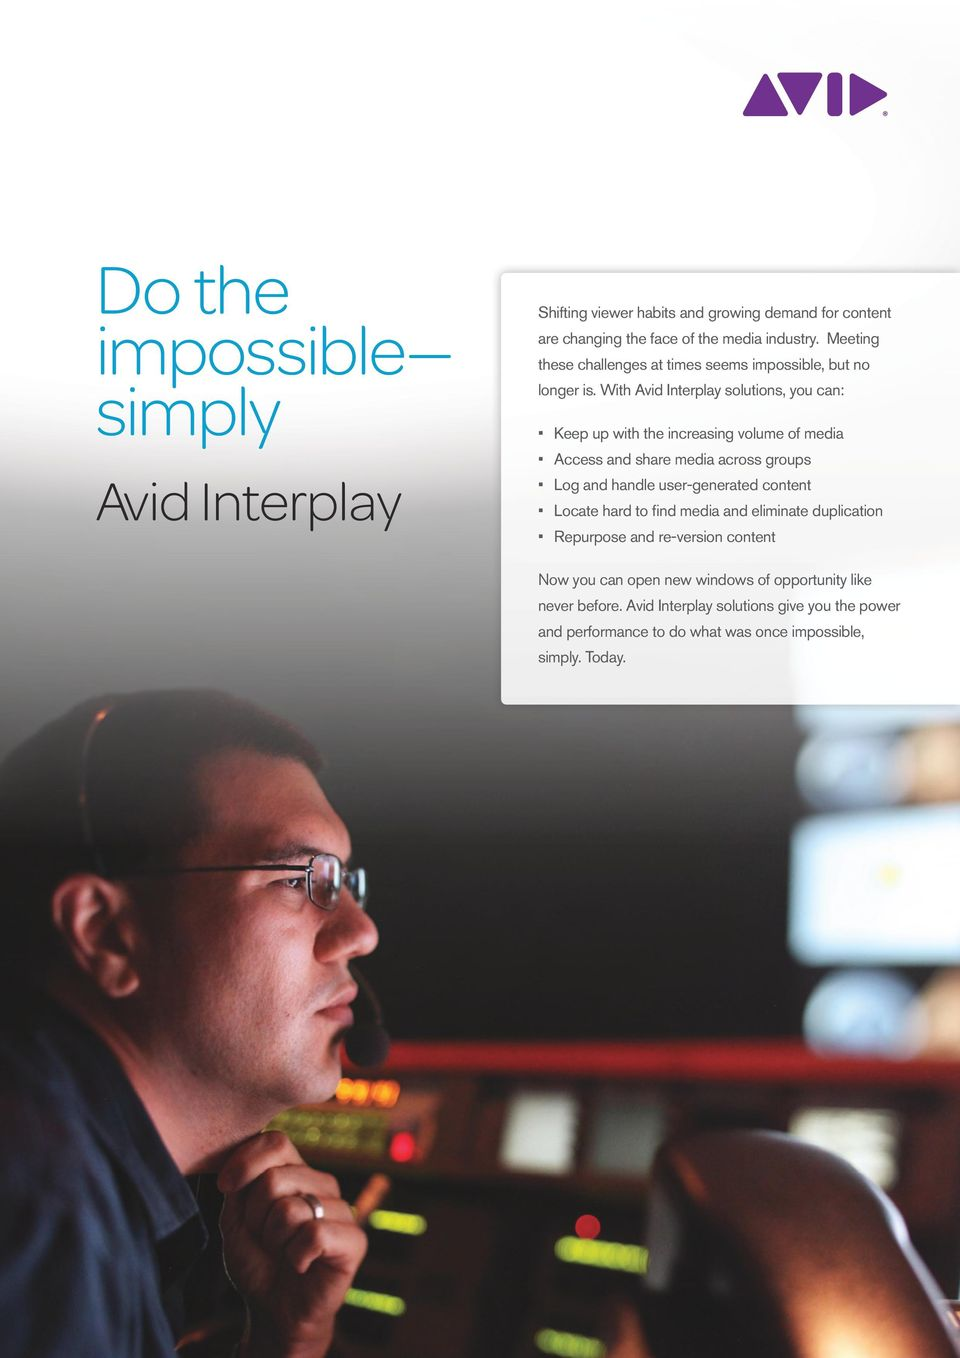 With Avid Interplay solutions, you can: Keep up with the increasing volume of media Access and share media across groups Log and handle user-generated